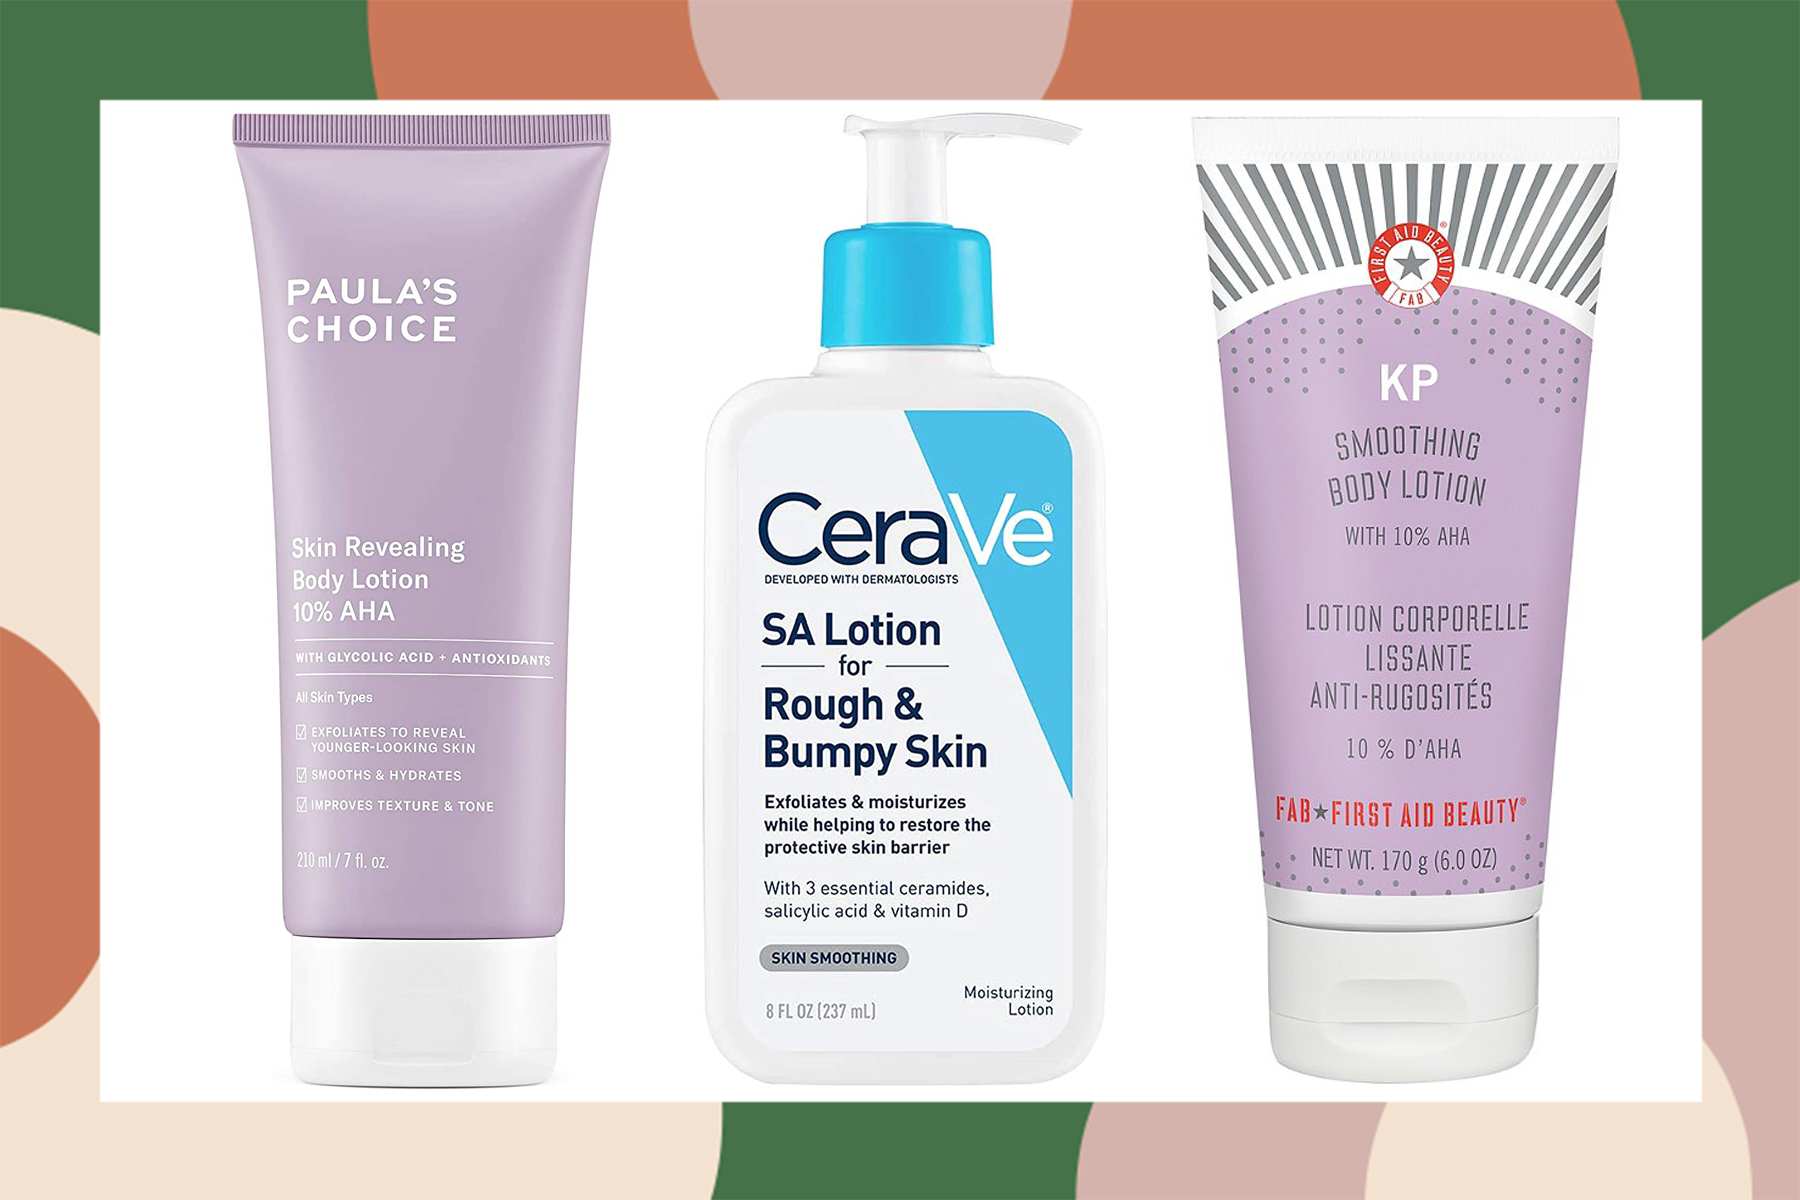 body exfoliators smoothing lotions creams wipes serums